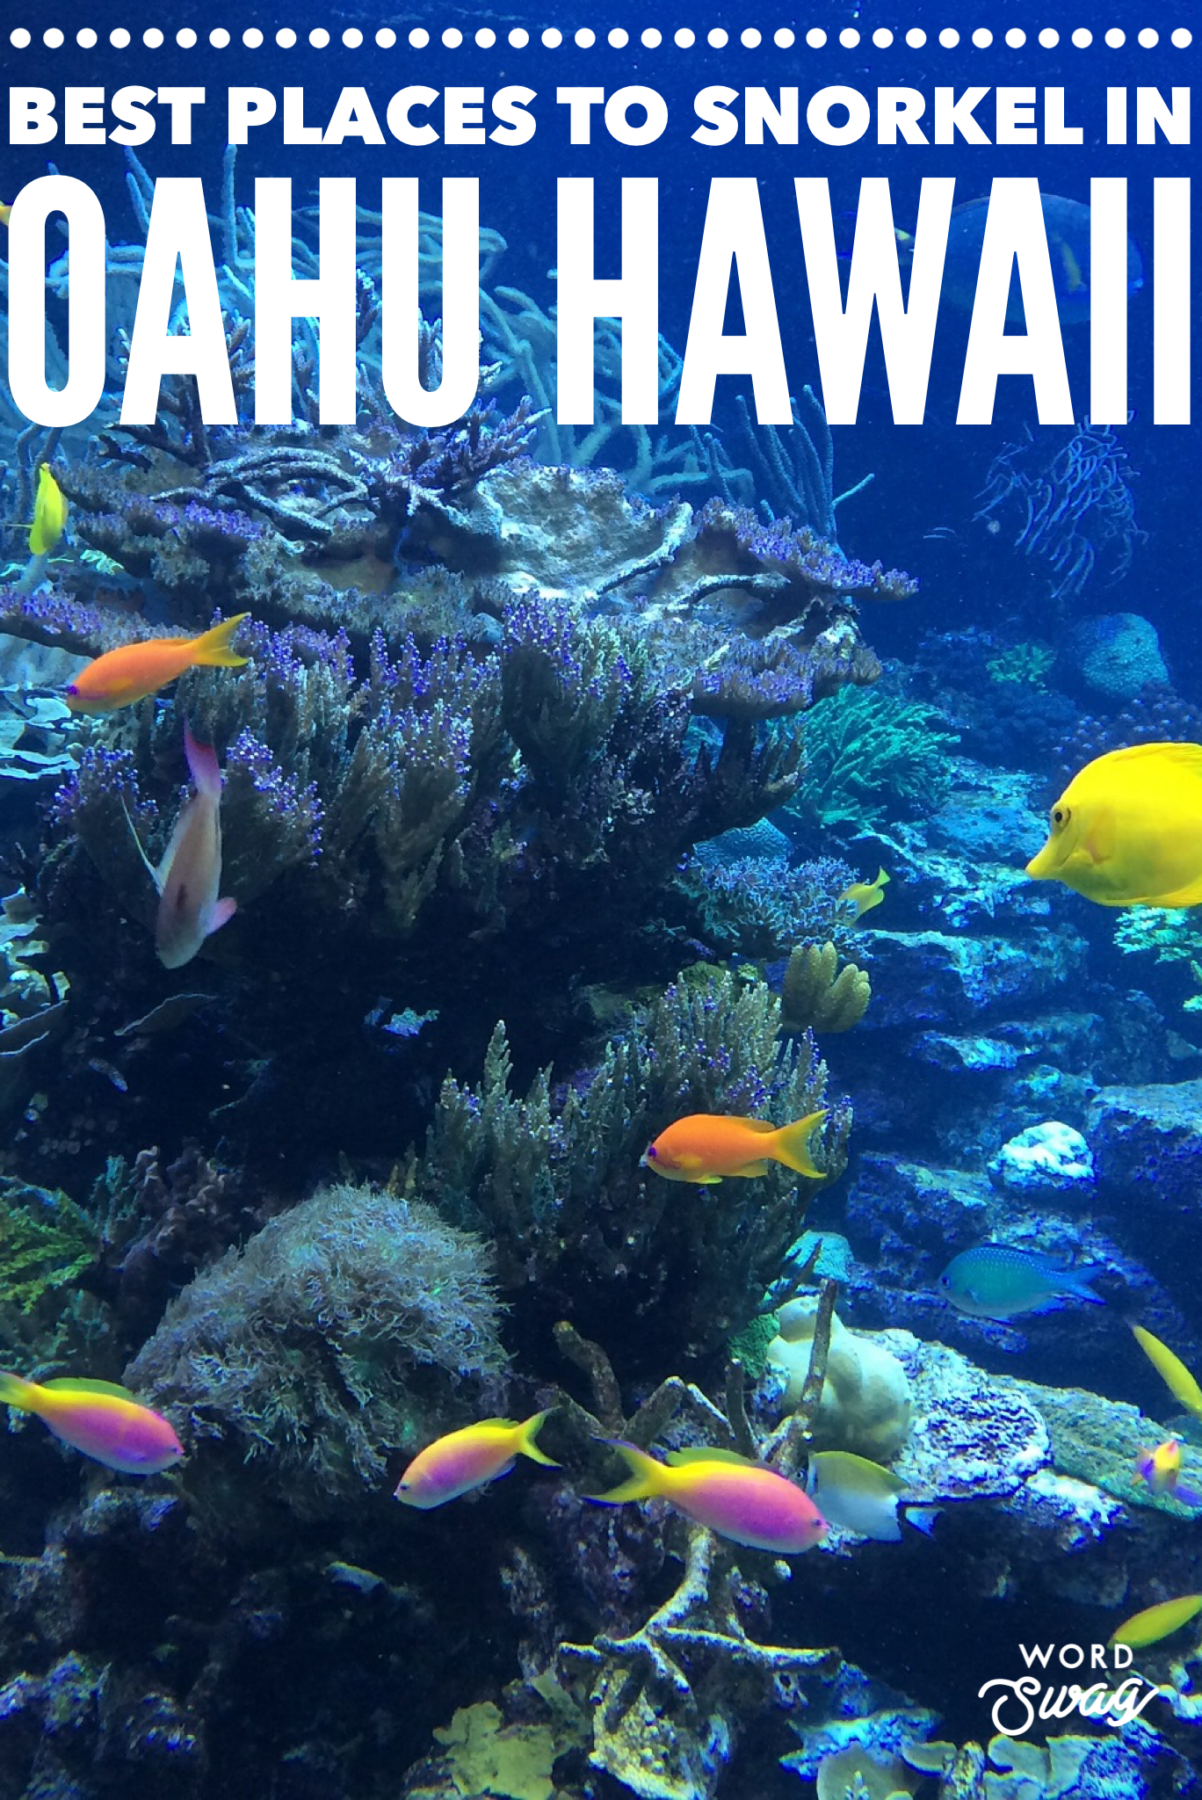 Best Places for Snorkeling In Oahu